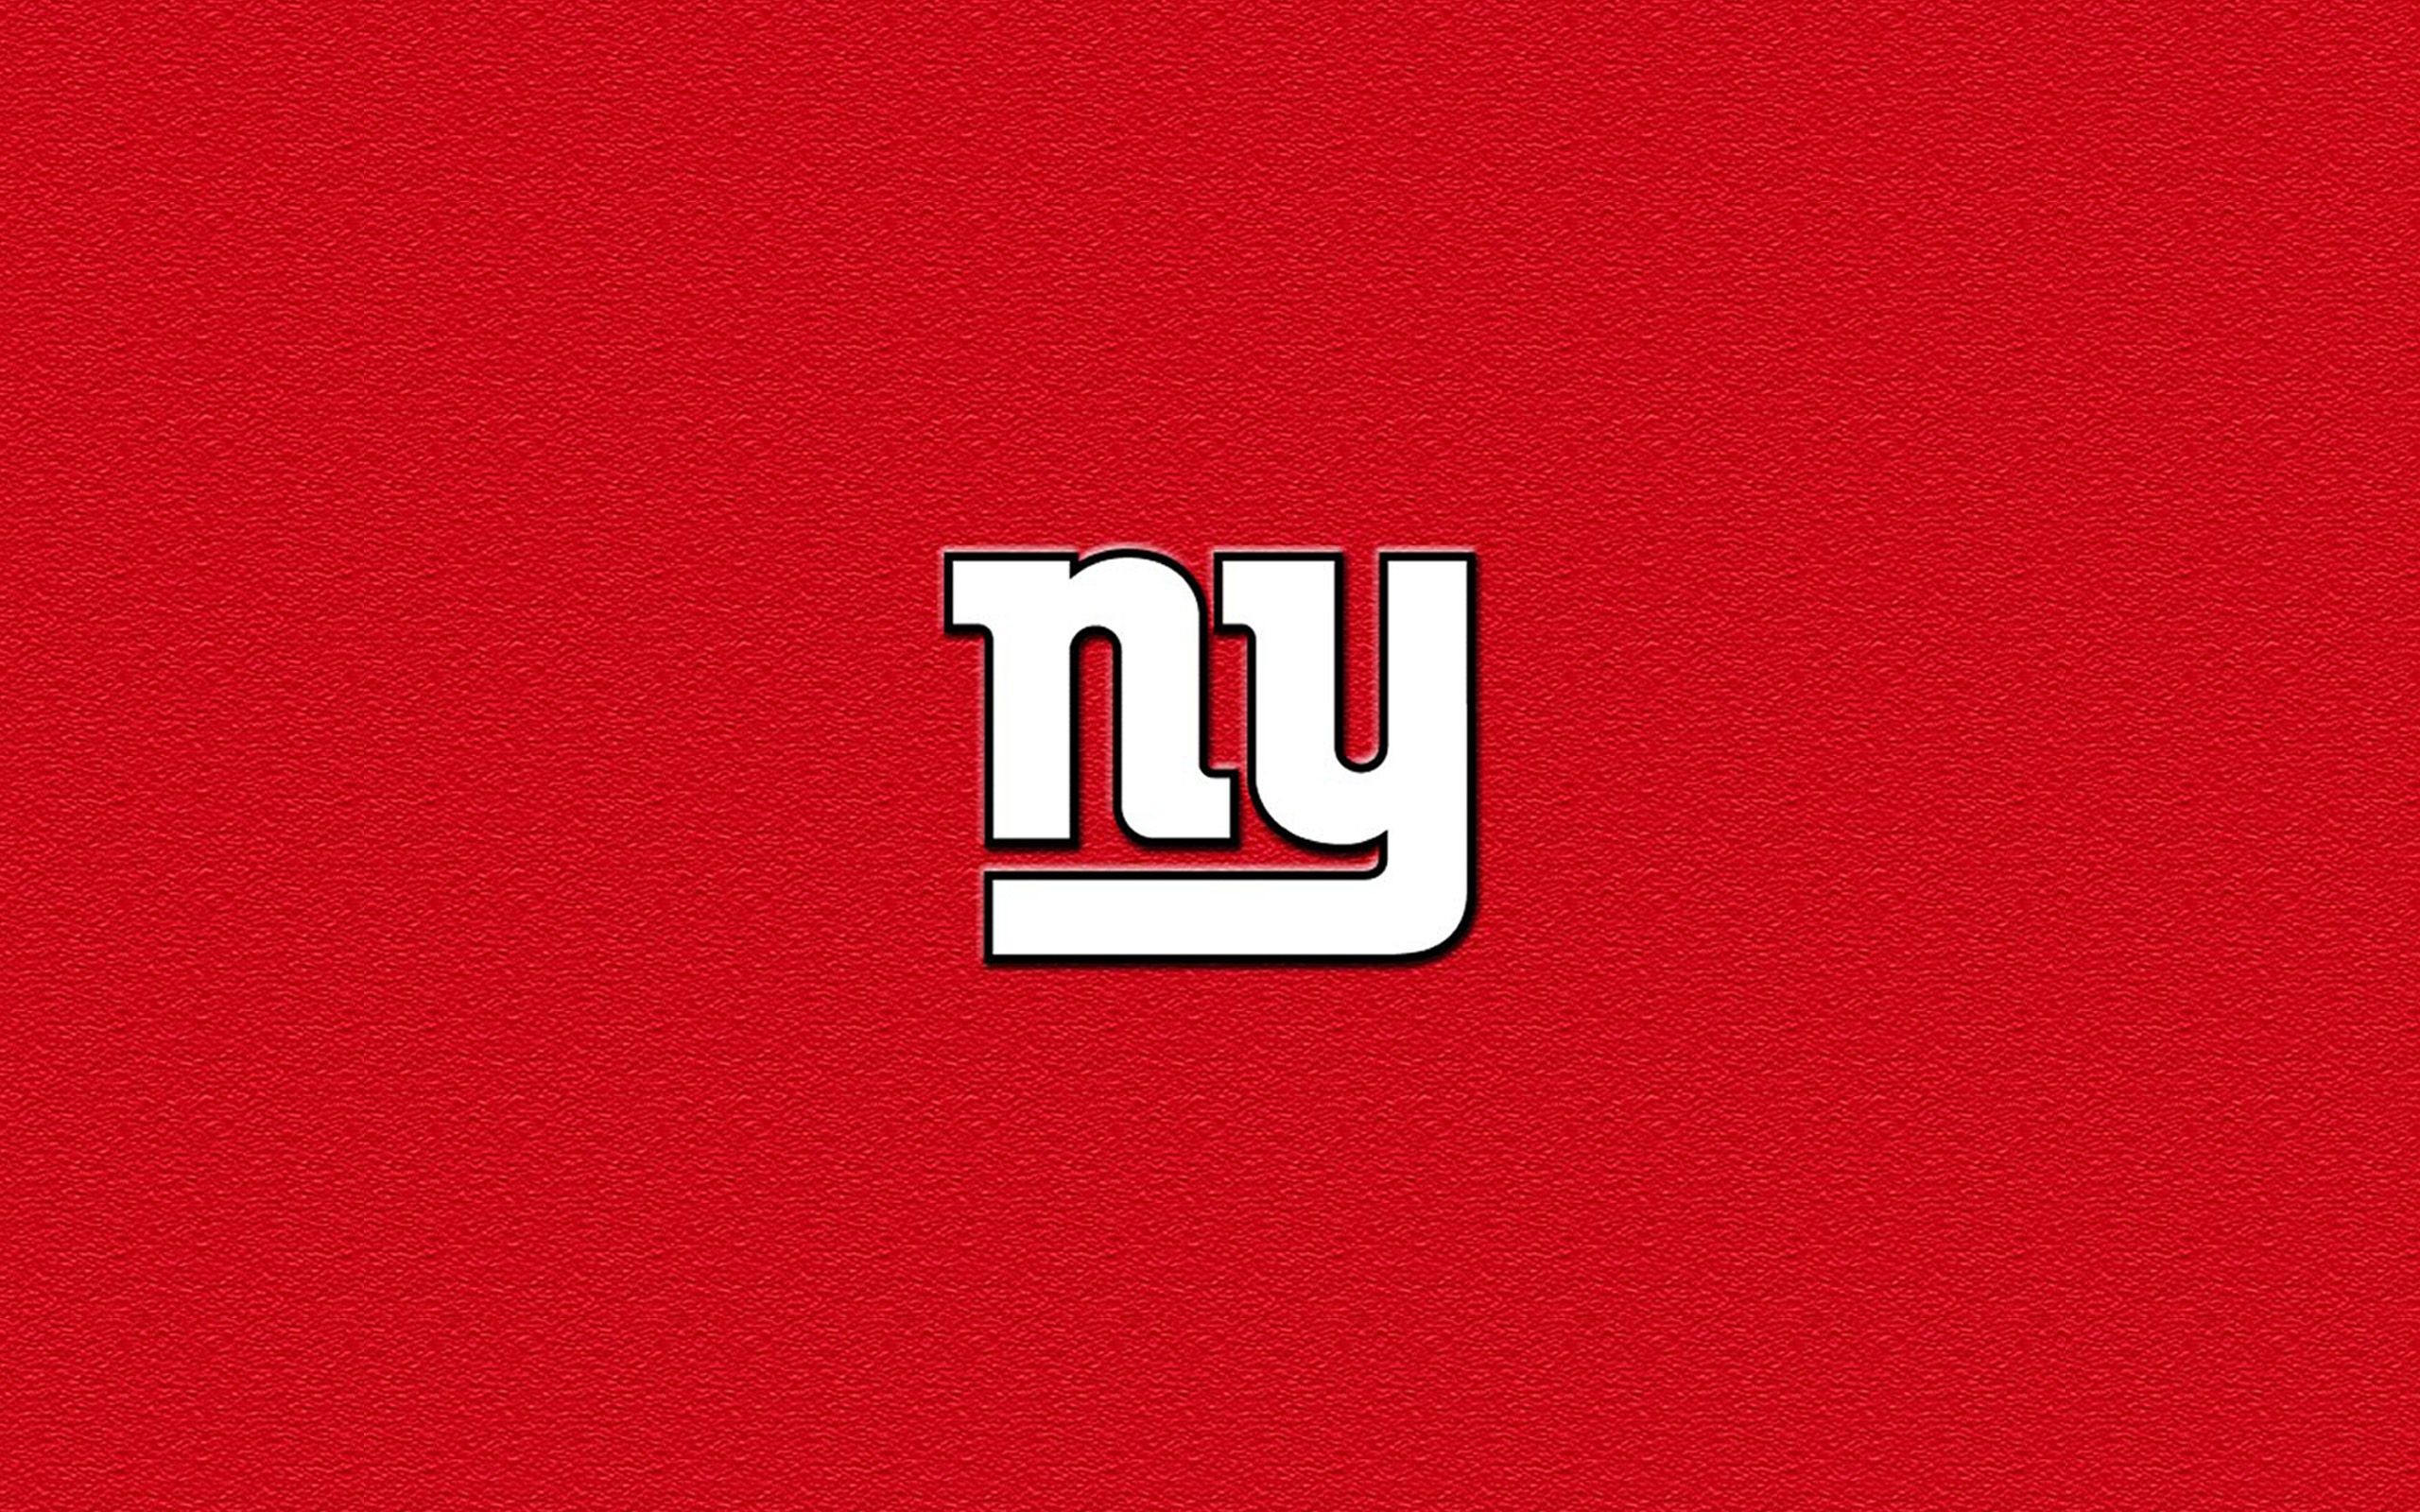 Download New York Giants Wallpaper HD #47302 – Download Page .